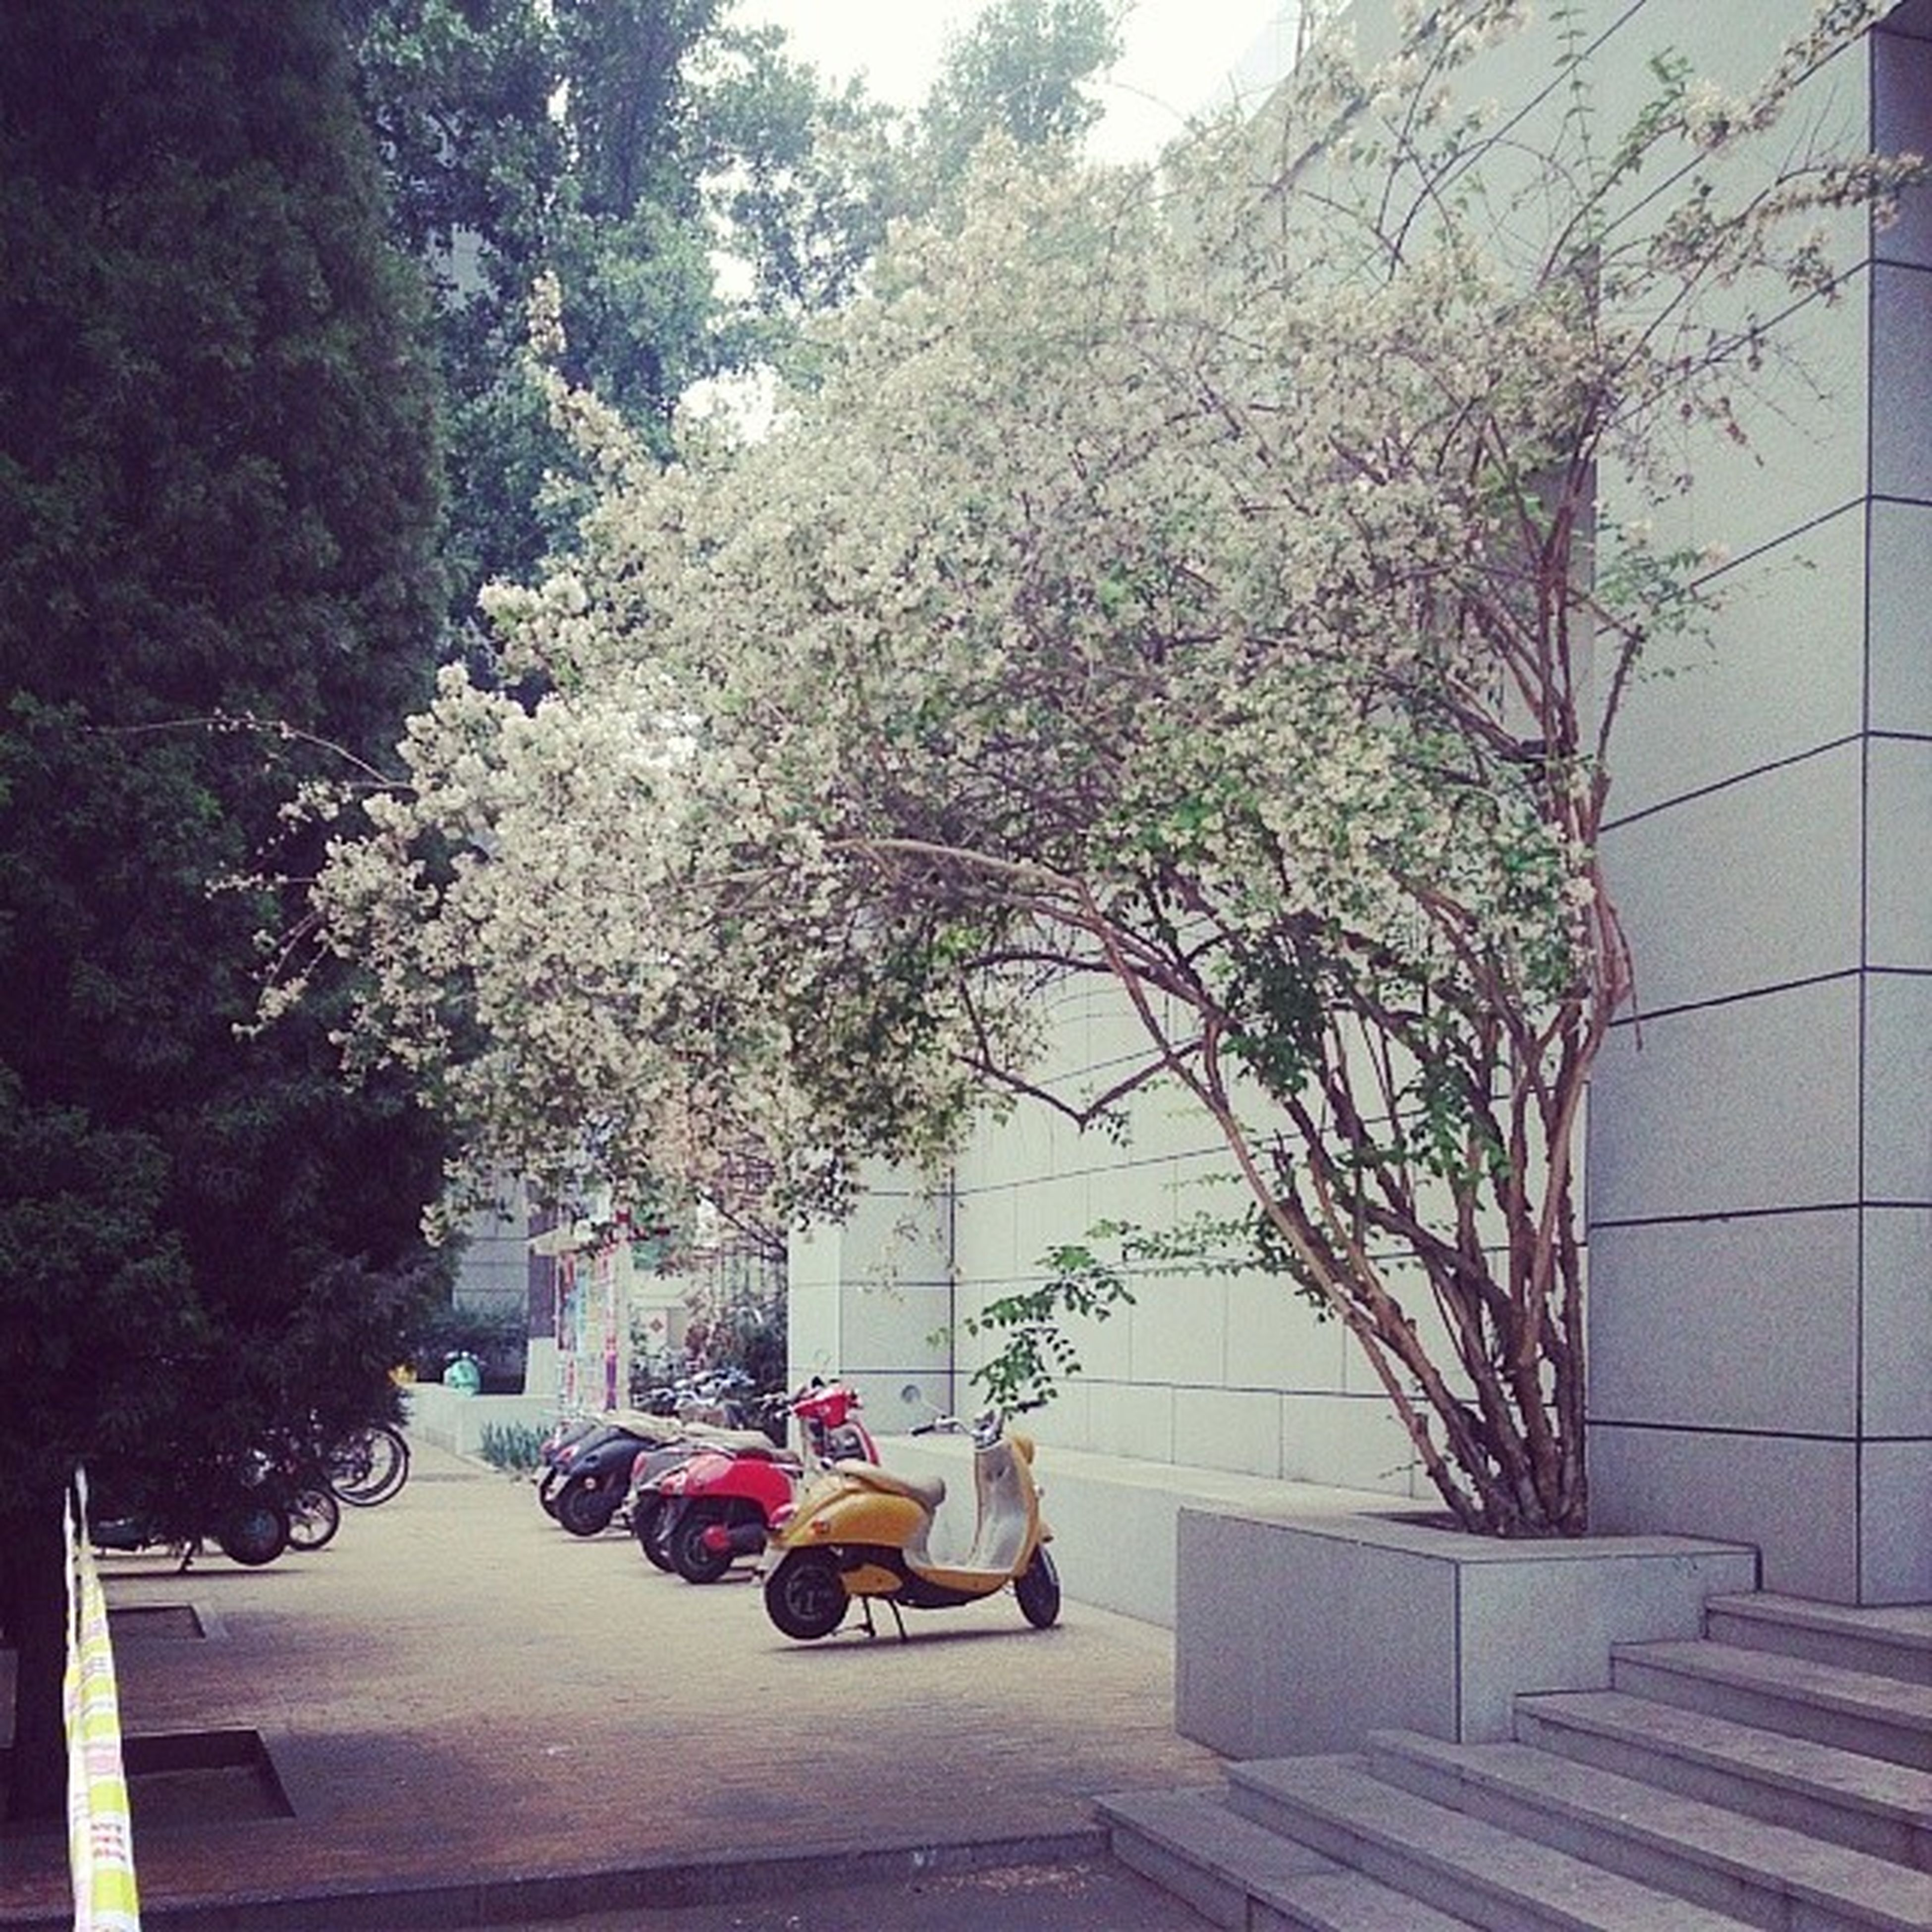 tree, transportation, branch, growth, built structure, building exterior, architecture, car, land vehicle, flower, street, mode of transport, city, road, sidewalk, sunlight, day, footpath, incidental people, park - man made space